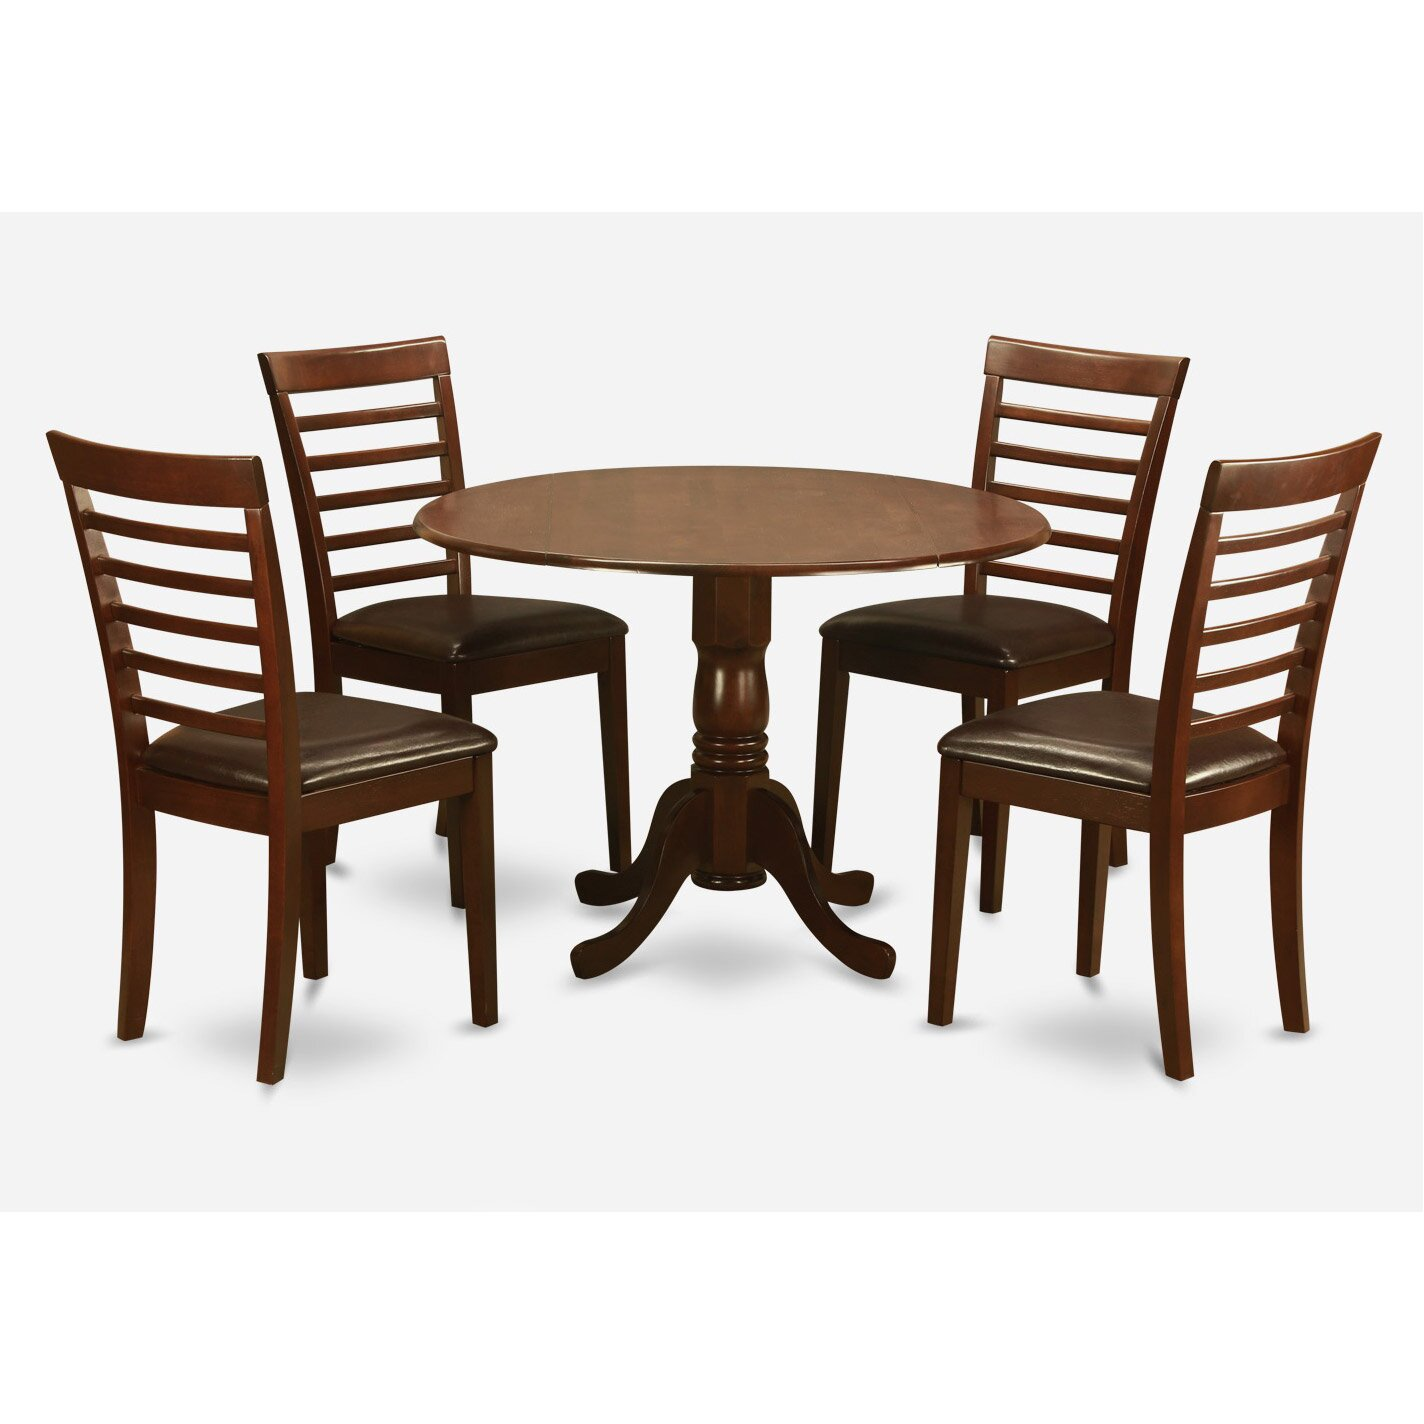 Dublin 5 piece dining set wayfair for Small kitchen table with 4 chairs